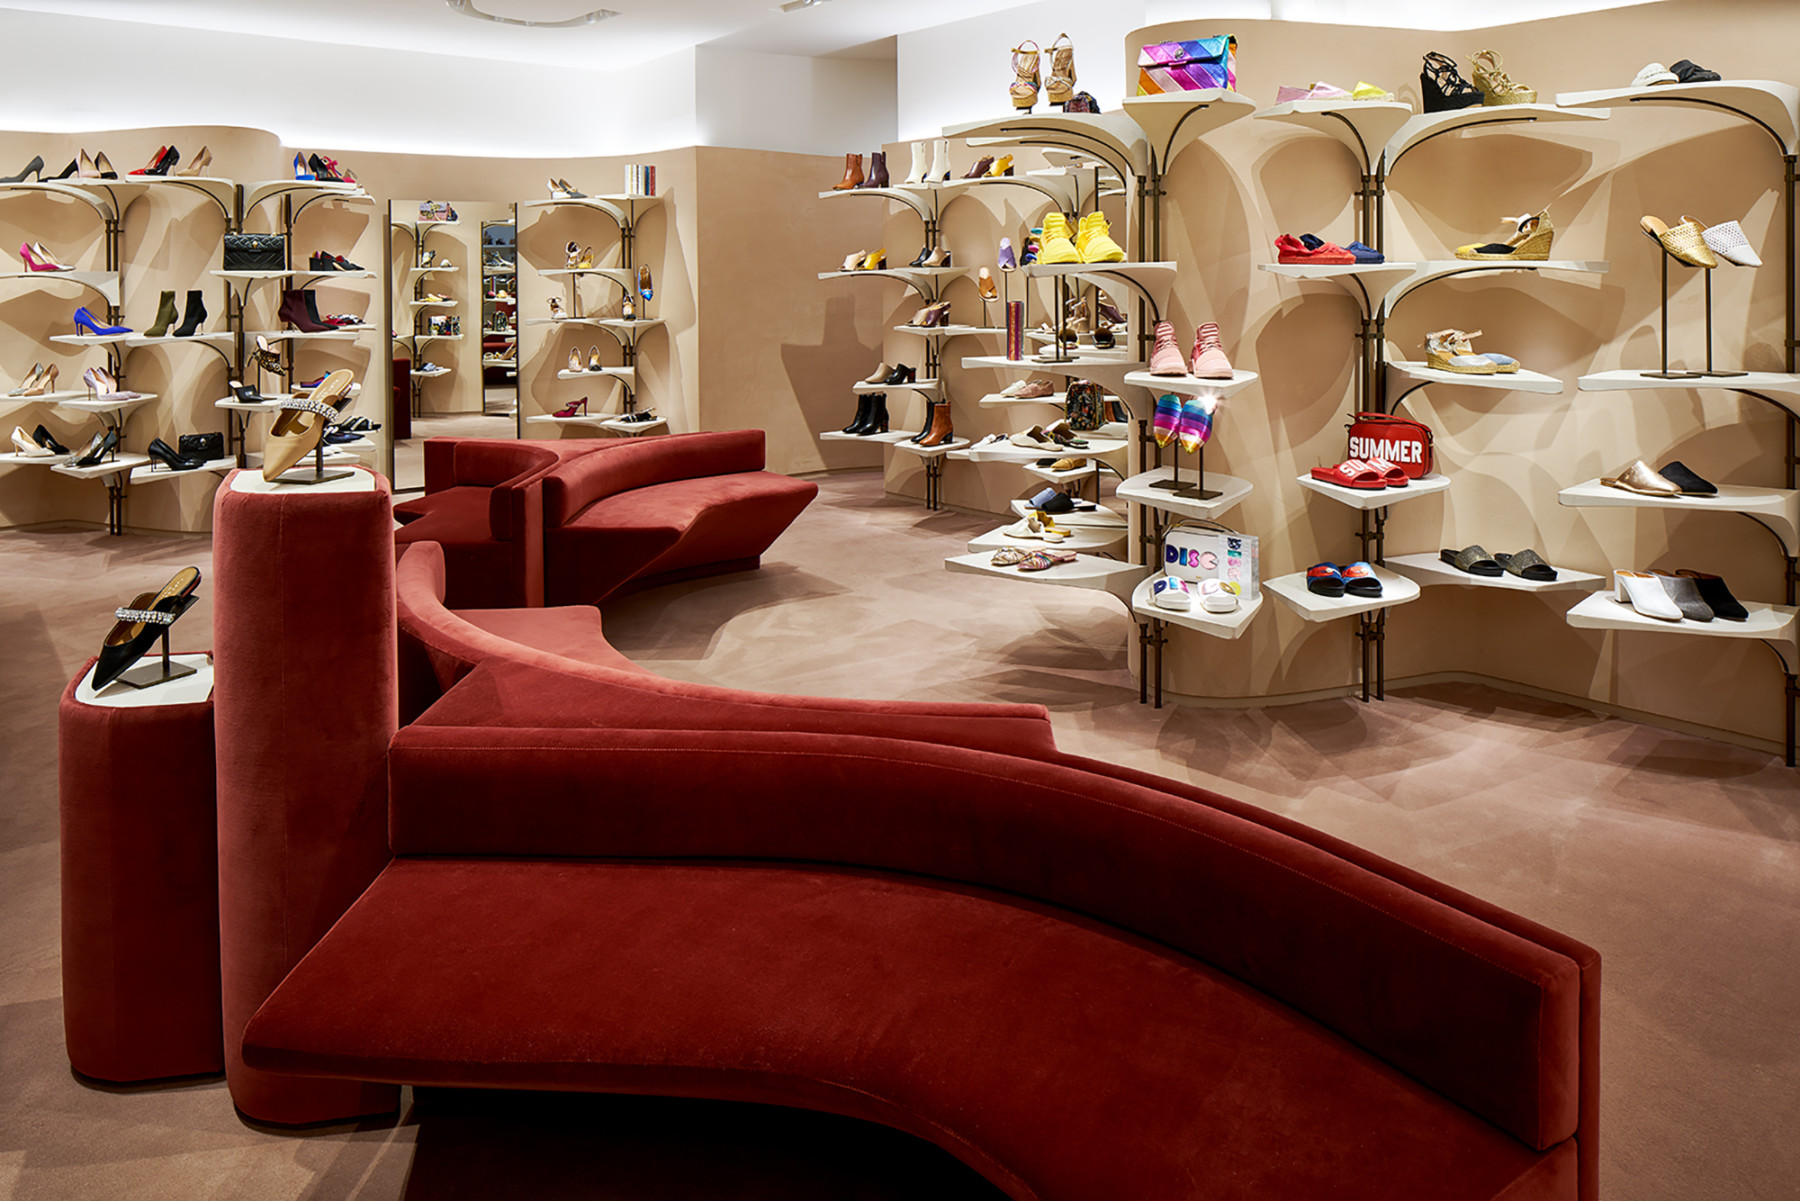 Jamie-Fobert-Architects-Retail-Interiors-Kurt-Geiger-Selfridges-Design-Concept-2